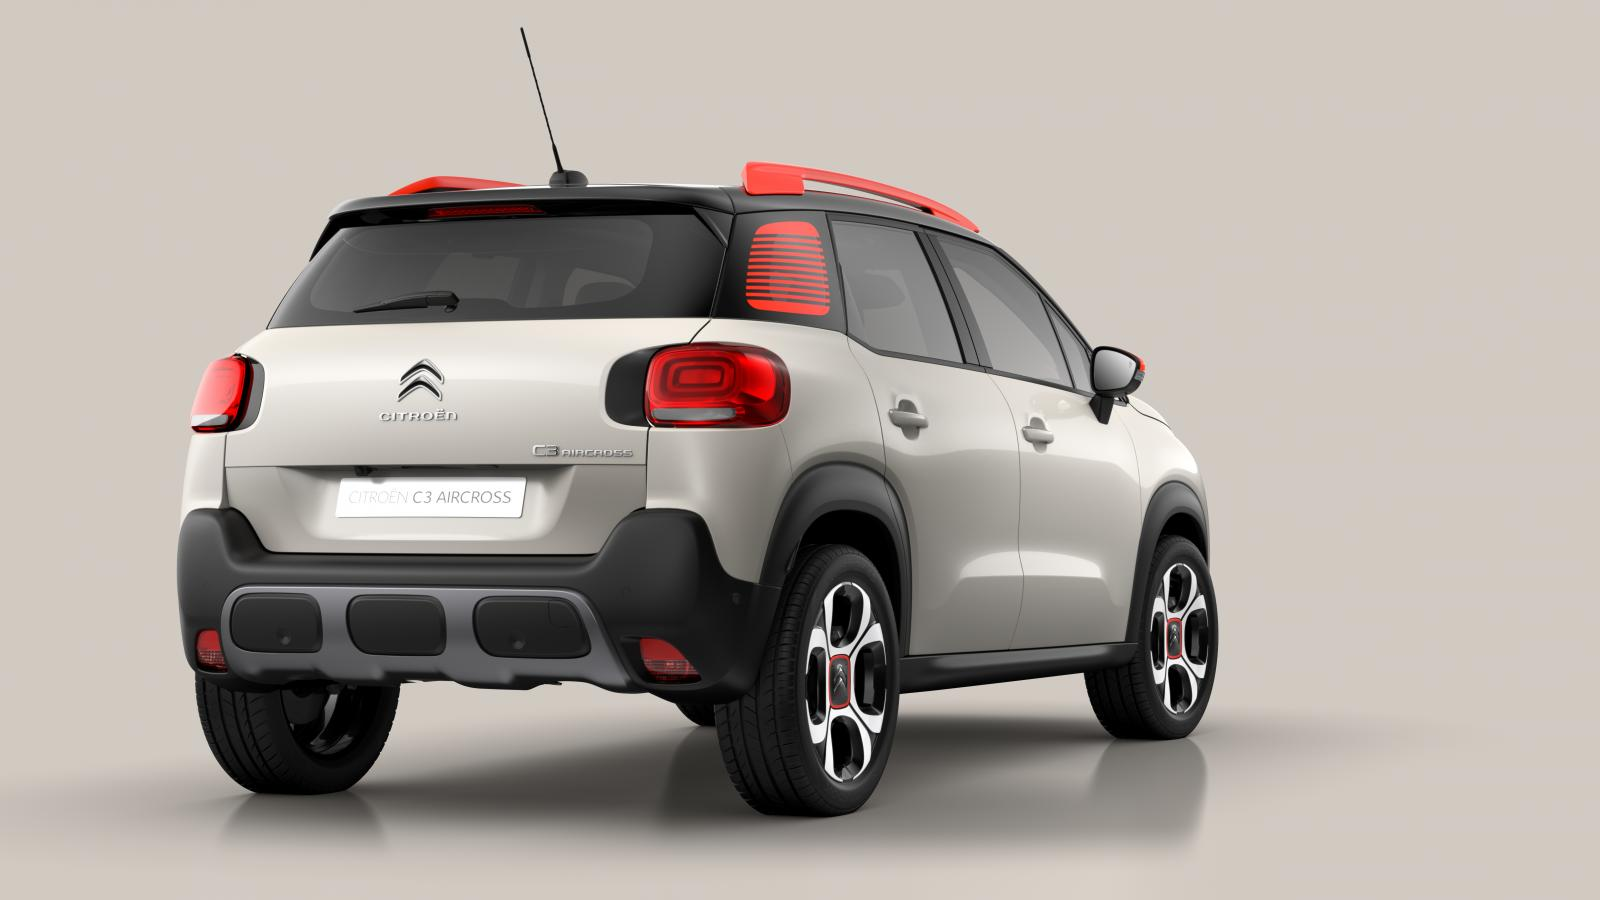 C3 Aircross Compact SUV - 3/4 Rear